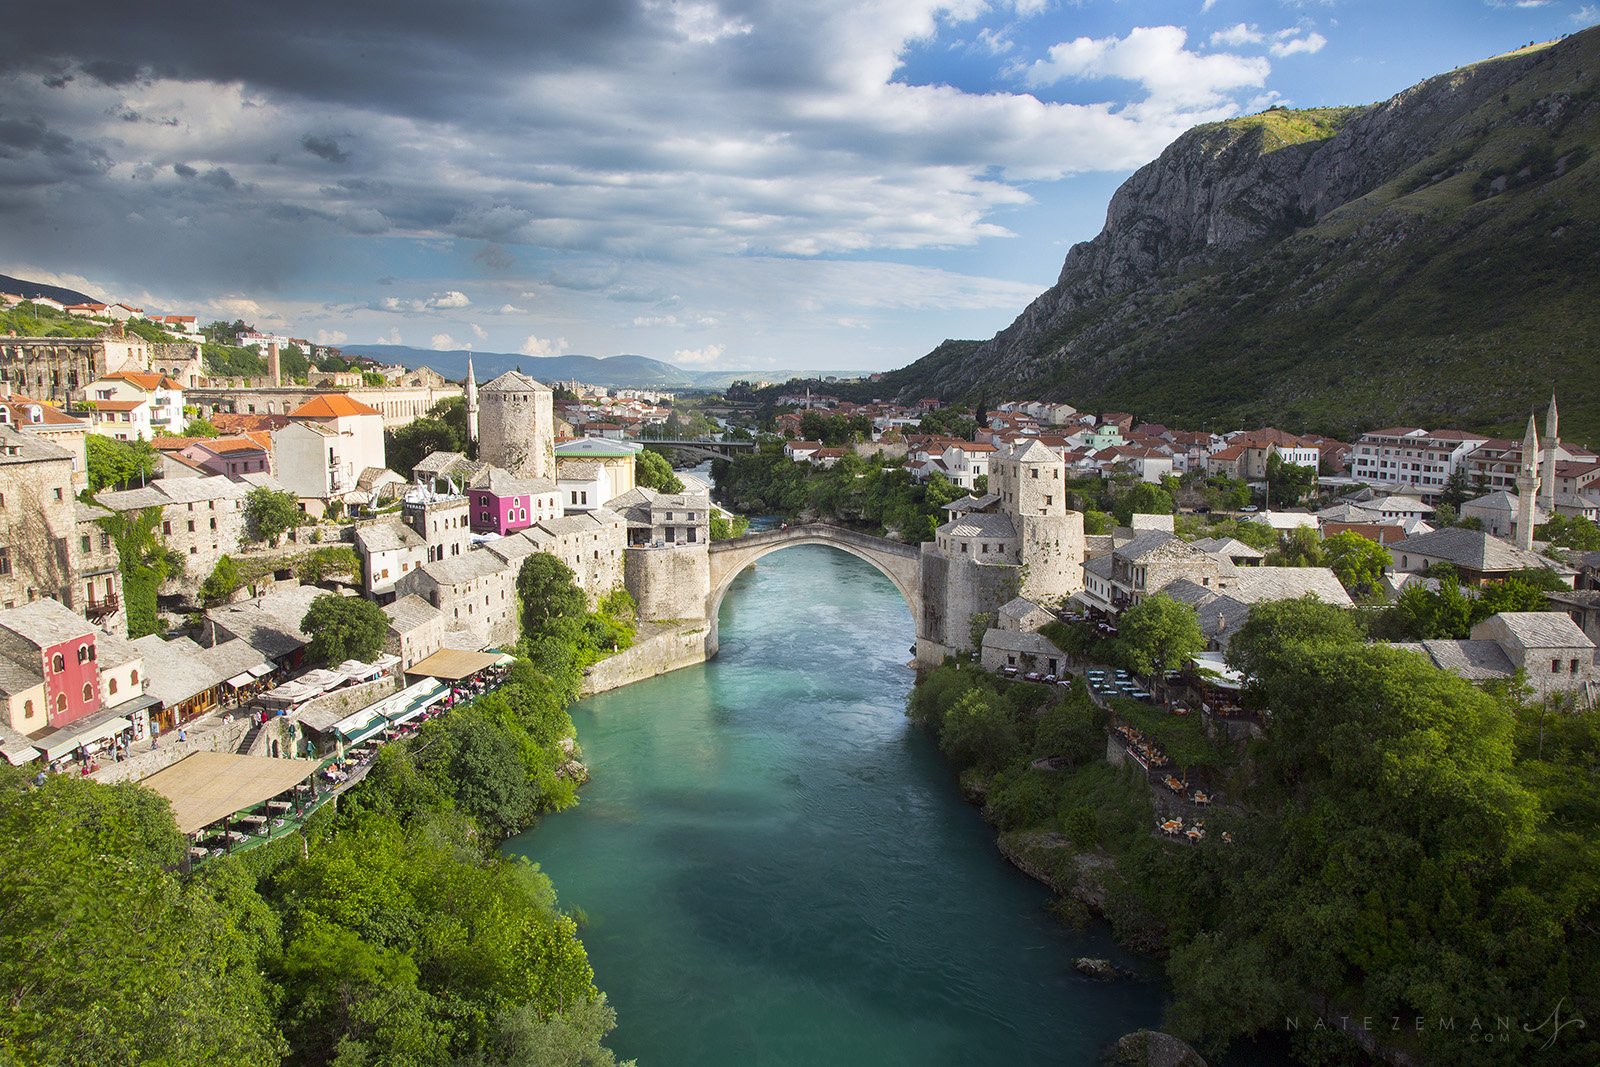 stari most, bosnia herzigovina, bosnia, bridge, old bridge, mosque view, neretva river, koski mehmed mosque, , photo